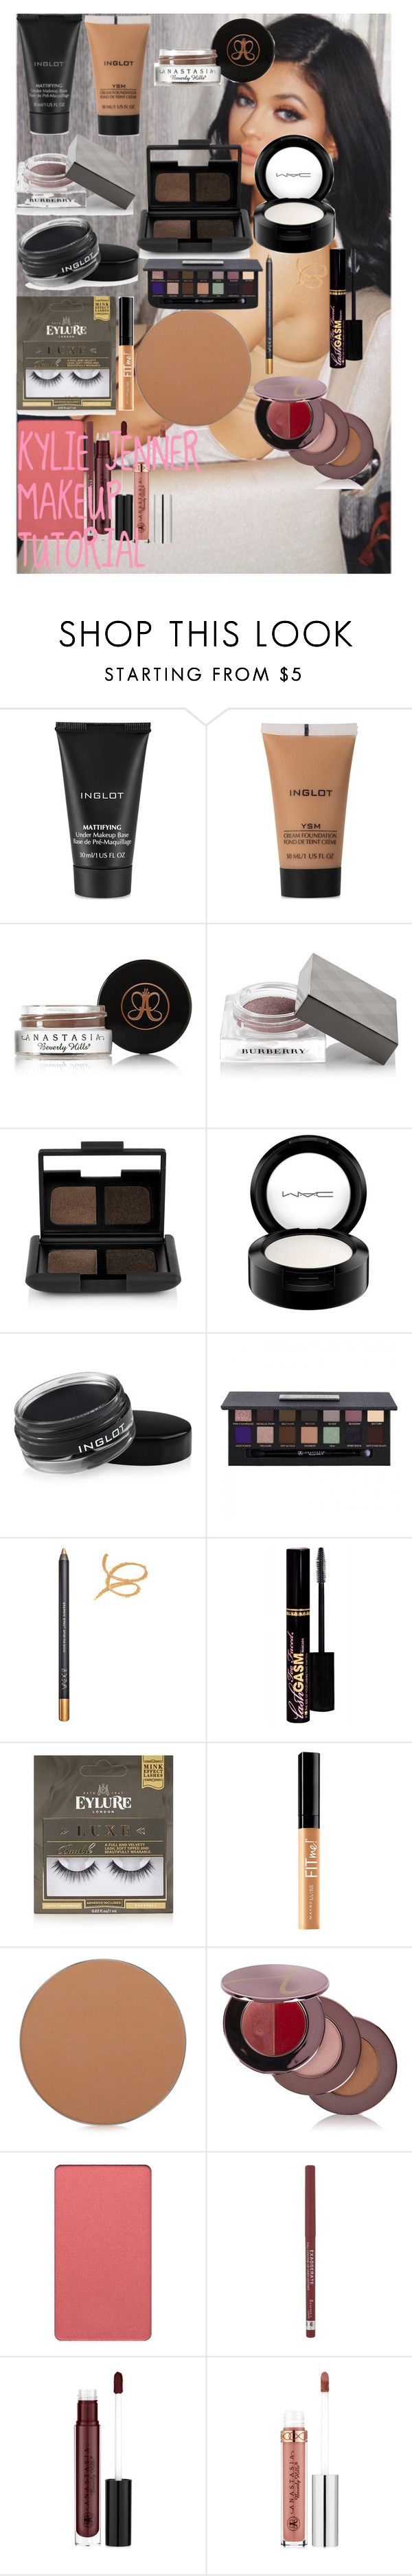 """KYLIE JENNER MAKEUP TUTORIAL"" by oroartye-1 on Polyvore featuring beauty, Inglot, Anastasia Beverly Hills, Burberry, NARS Cosmetics, MAC Cosmetics, ZOEVA, Too Faced Cosmetics, eylure and Maybelline"